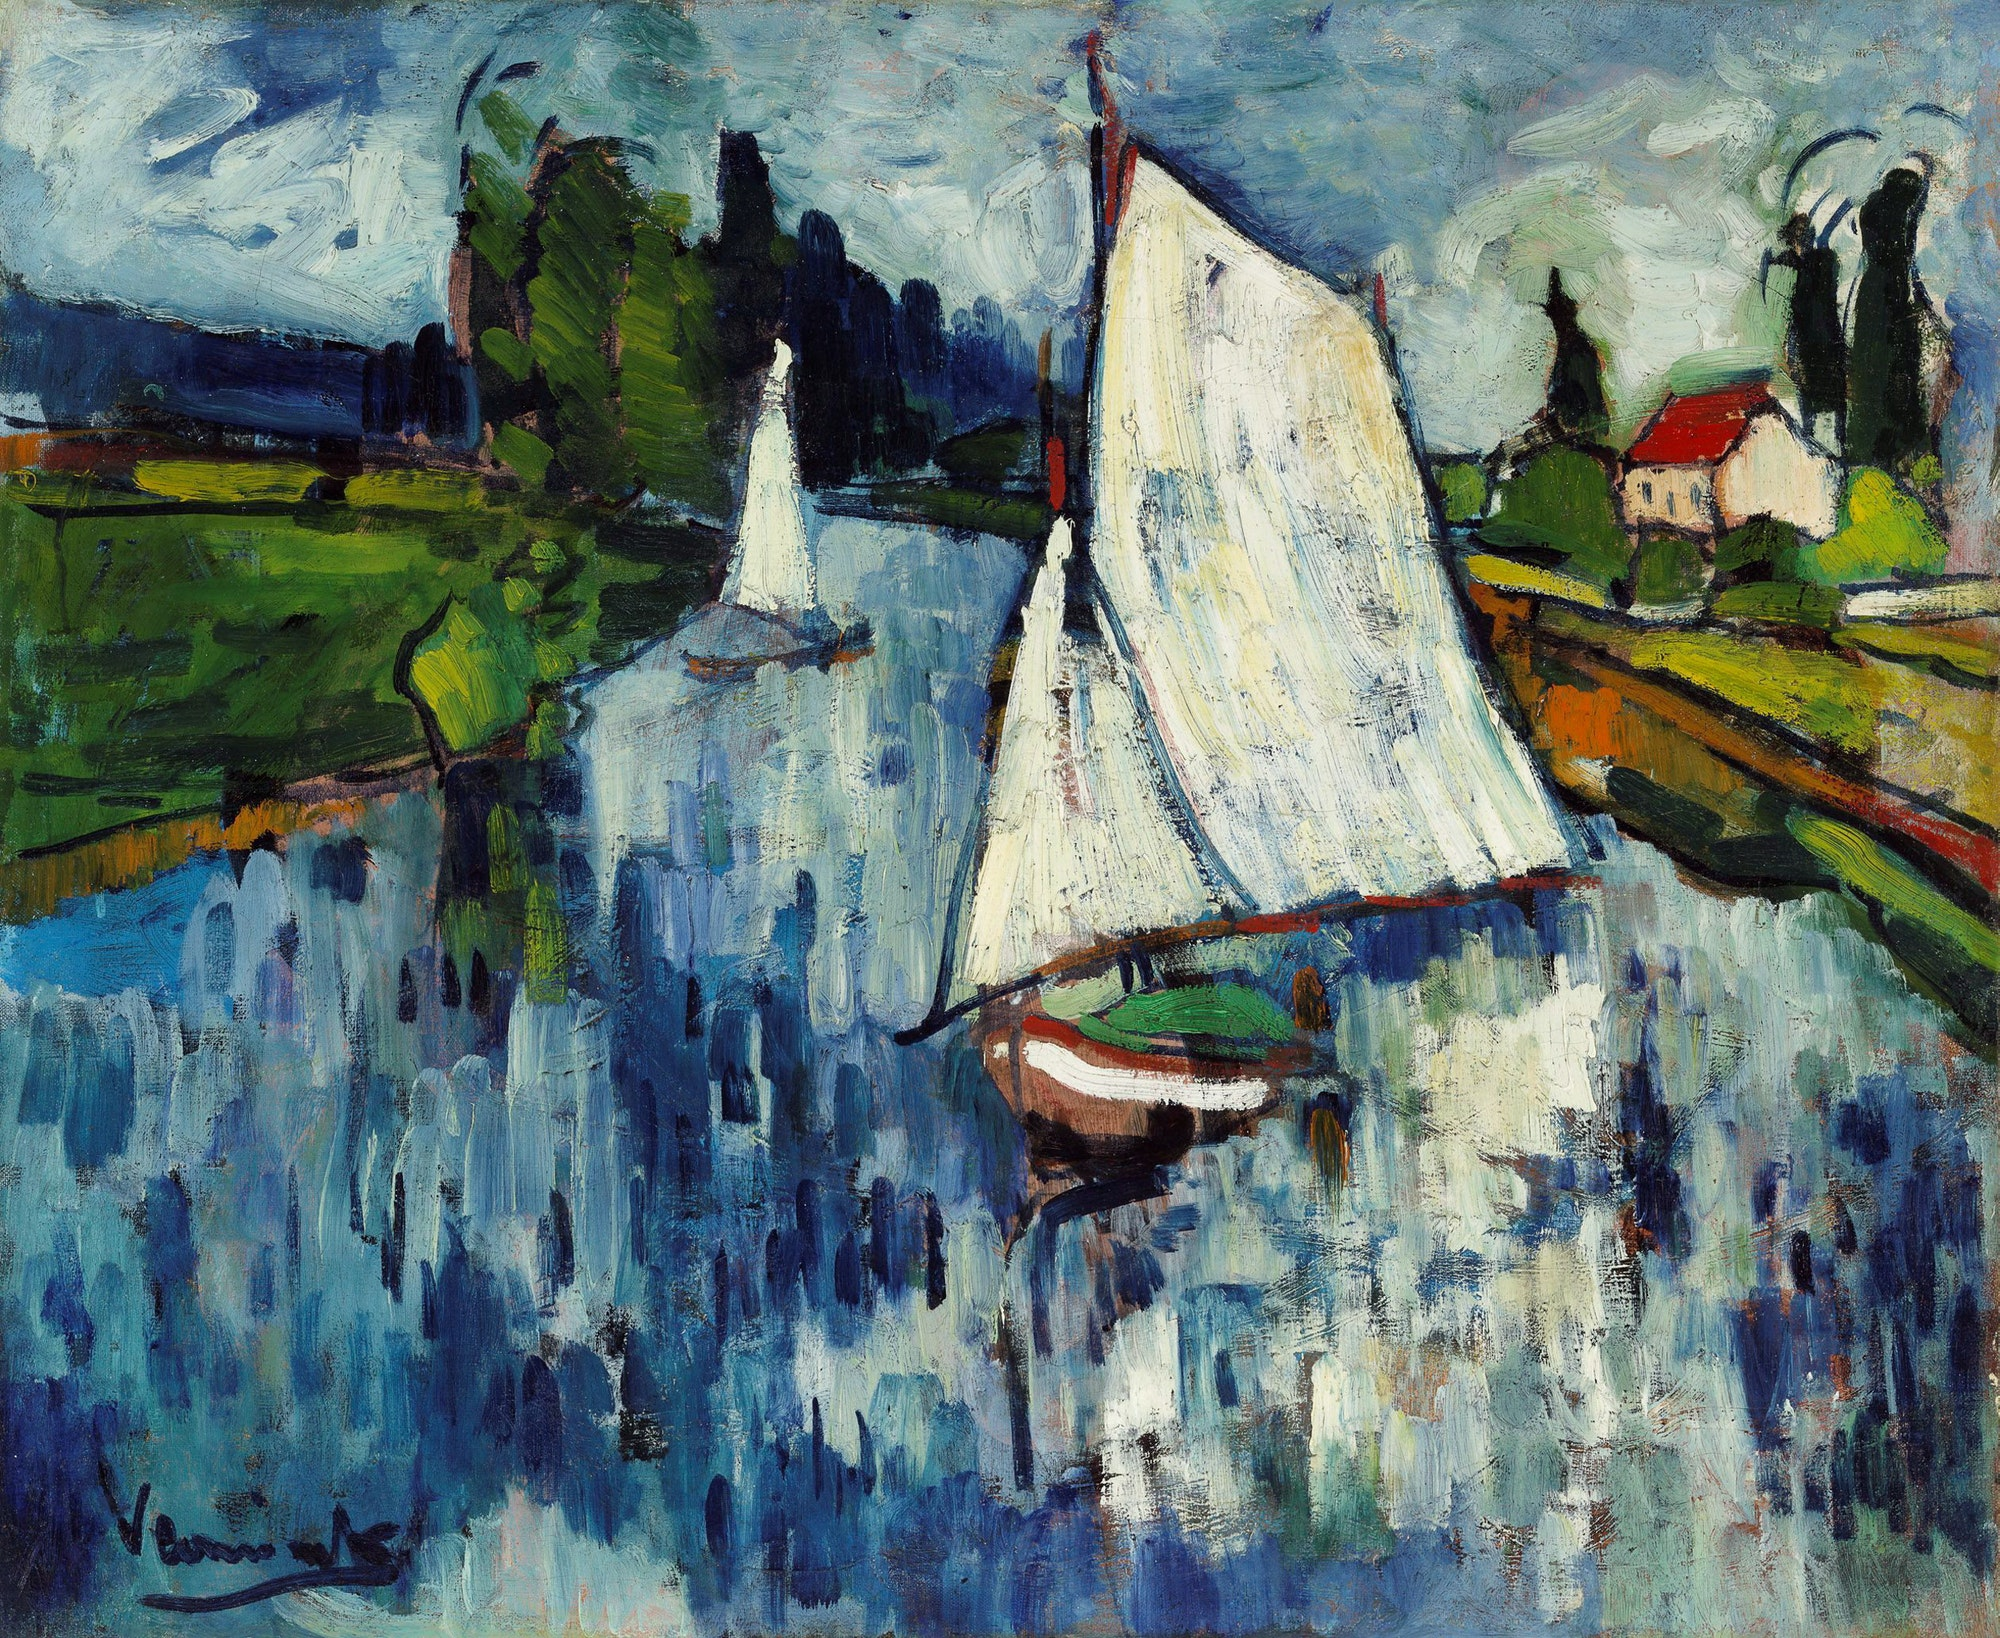 Maurice de Vlaminck Sailing boats at Chatou 1906  Art Gallery of New South Wales     Purchased with funds provided by the Art Gallery of New South Wales Foundation and the Margaret Hannah Olley Art Trust 2006  © Maurice de Vlaminck/ADAGP. Licensed by Copyright Agency